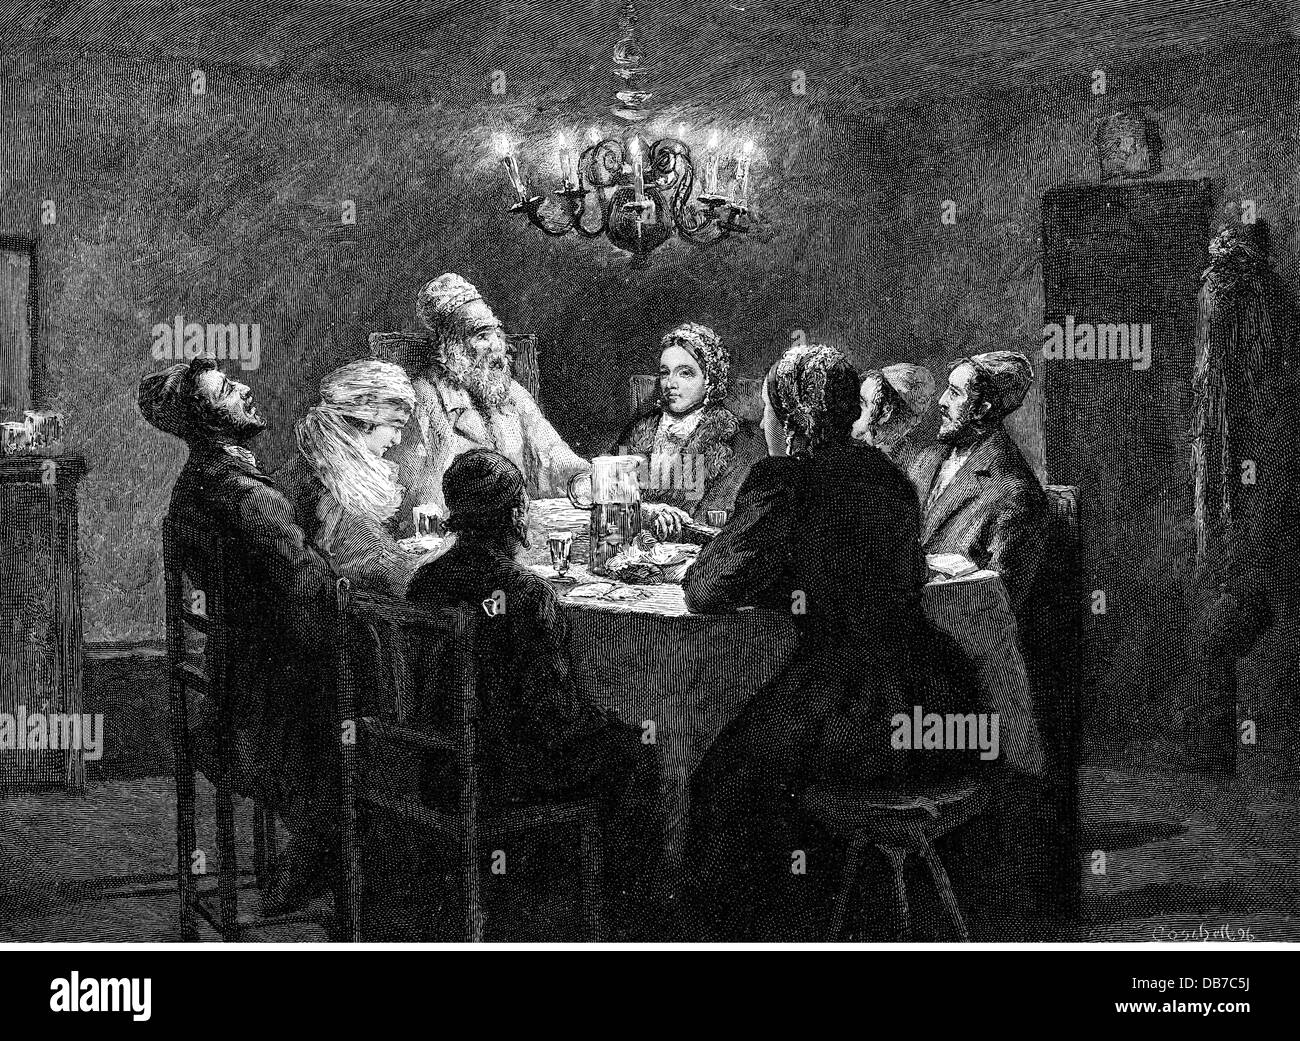 religion, Judaism, Passover Seder, wood engraving, by Moritz Coschell (1872 - 1943), 1896, Additional-Rights-Clearences - Stock Image